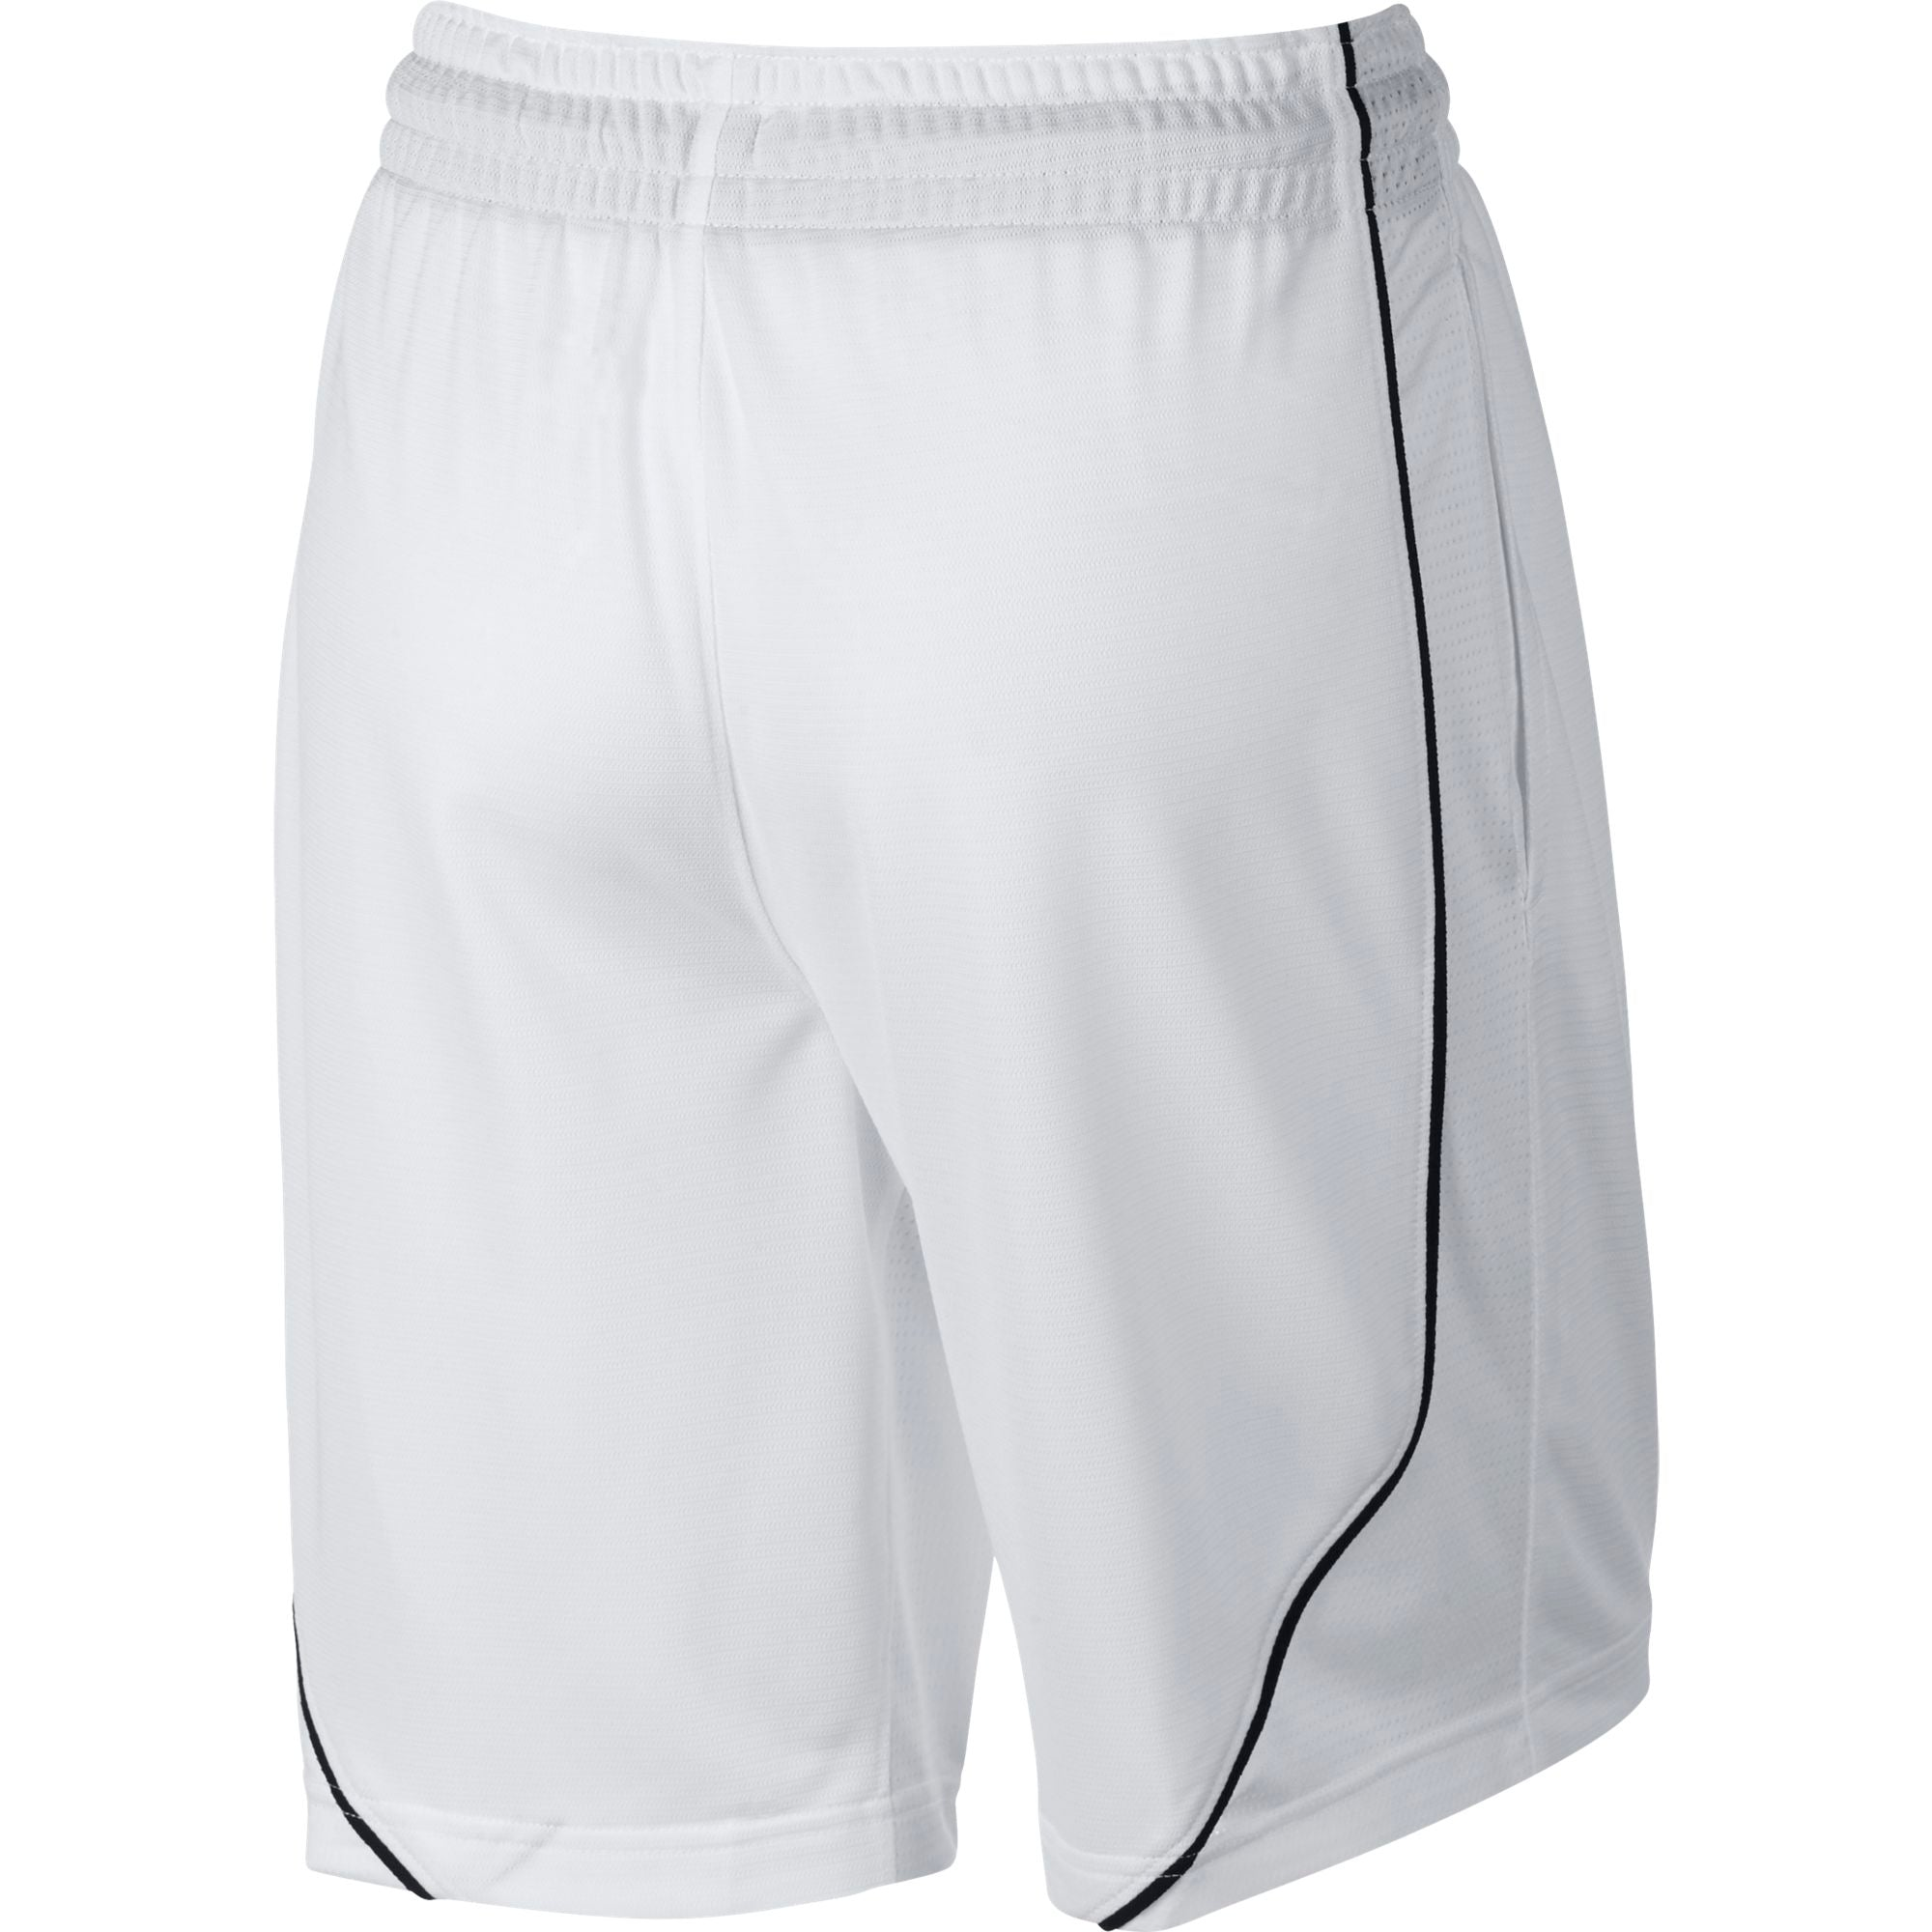 Nike Womens Basketball Dry Shorts - White/Black